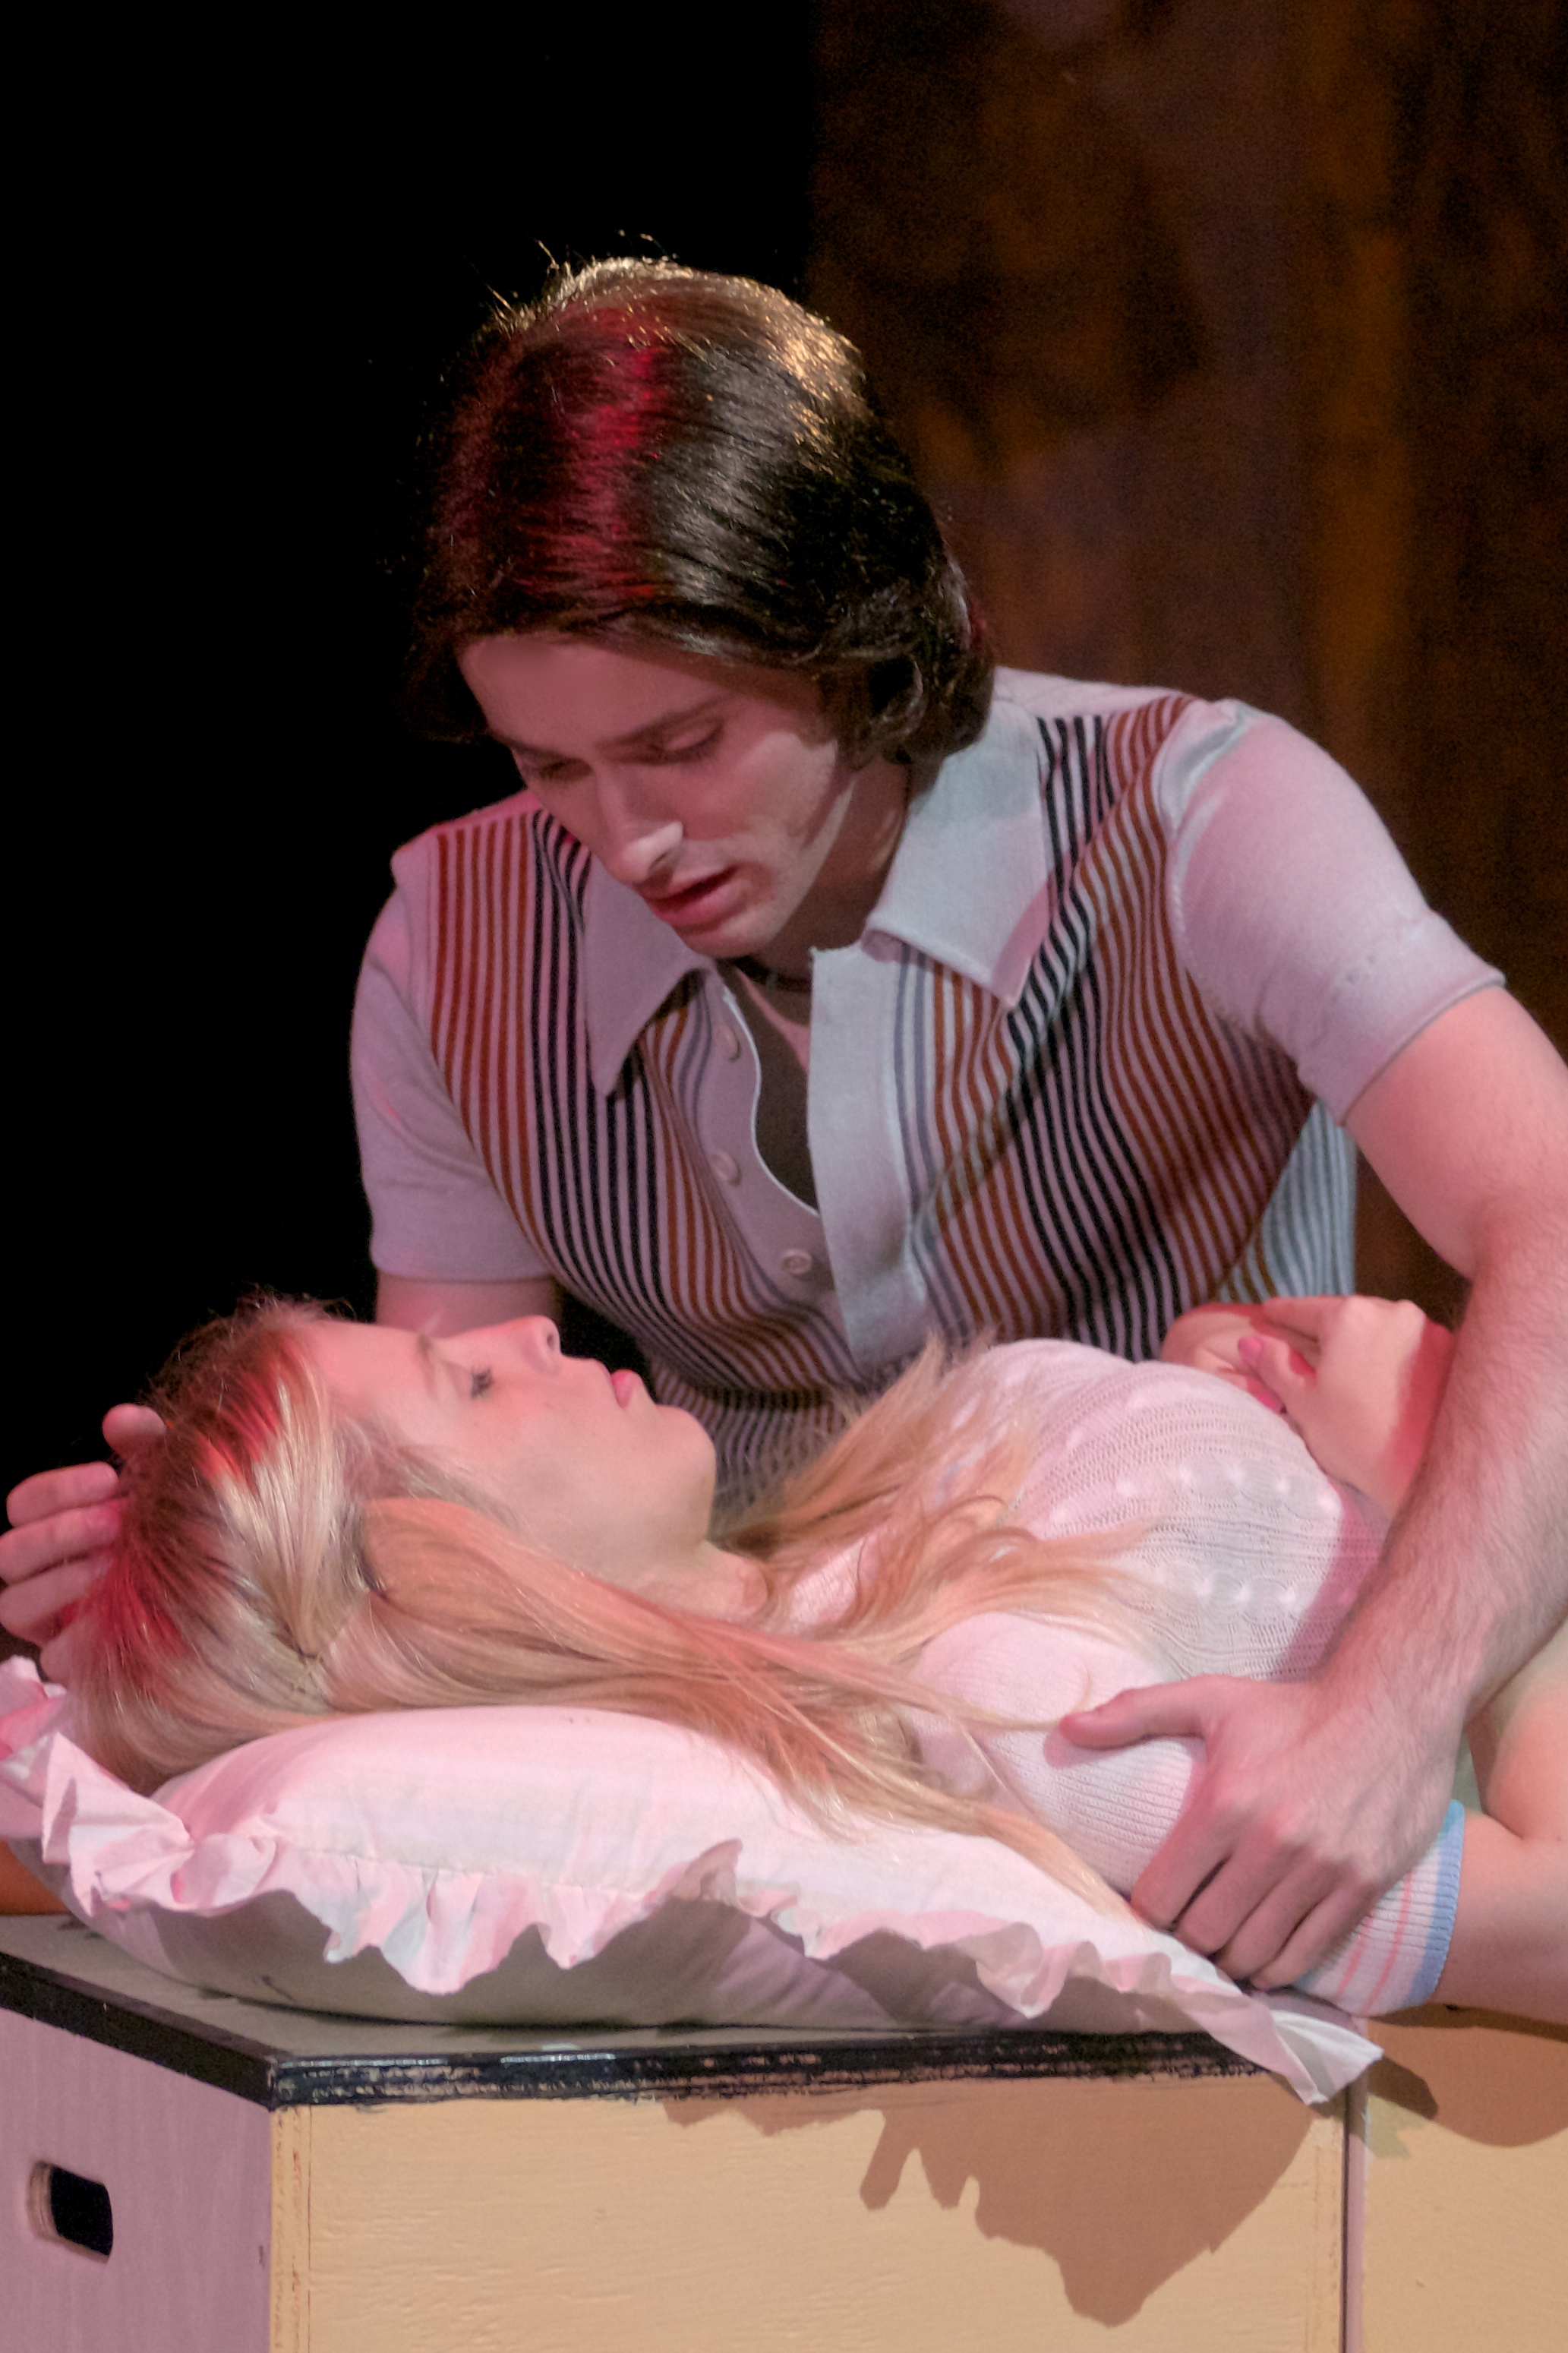 Erik Keiser (Keith), Cali Elizabeth Moore (Marcia) - photo by Tom Henning